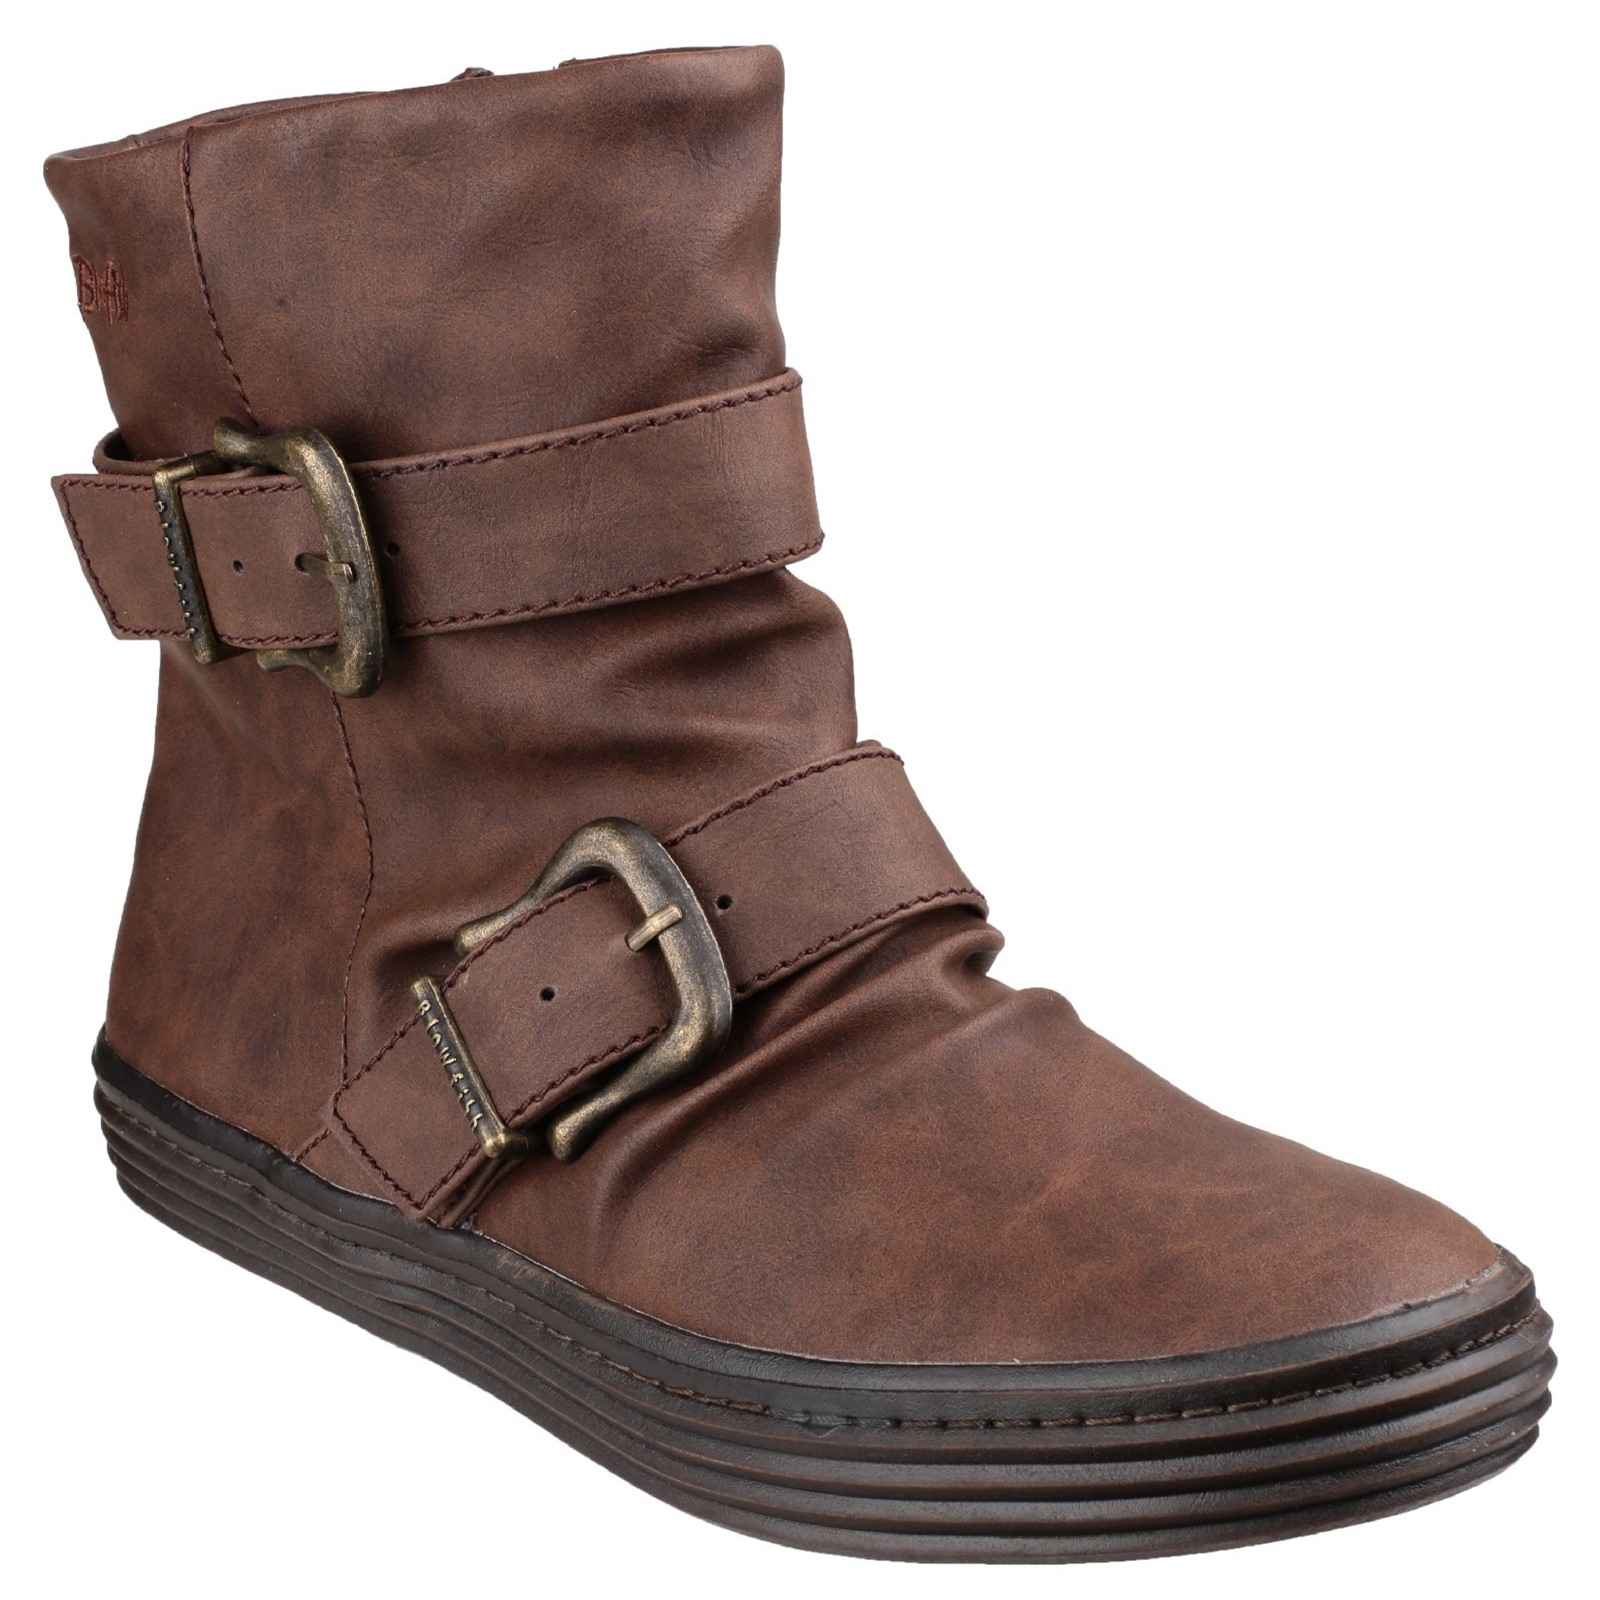 Blowfish Womens Octave  Texas double buckle boot Coffee Size UK 3 EU 36